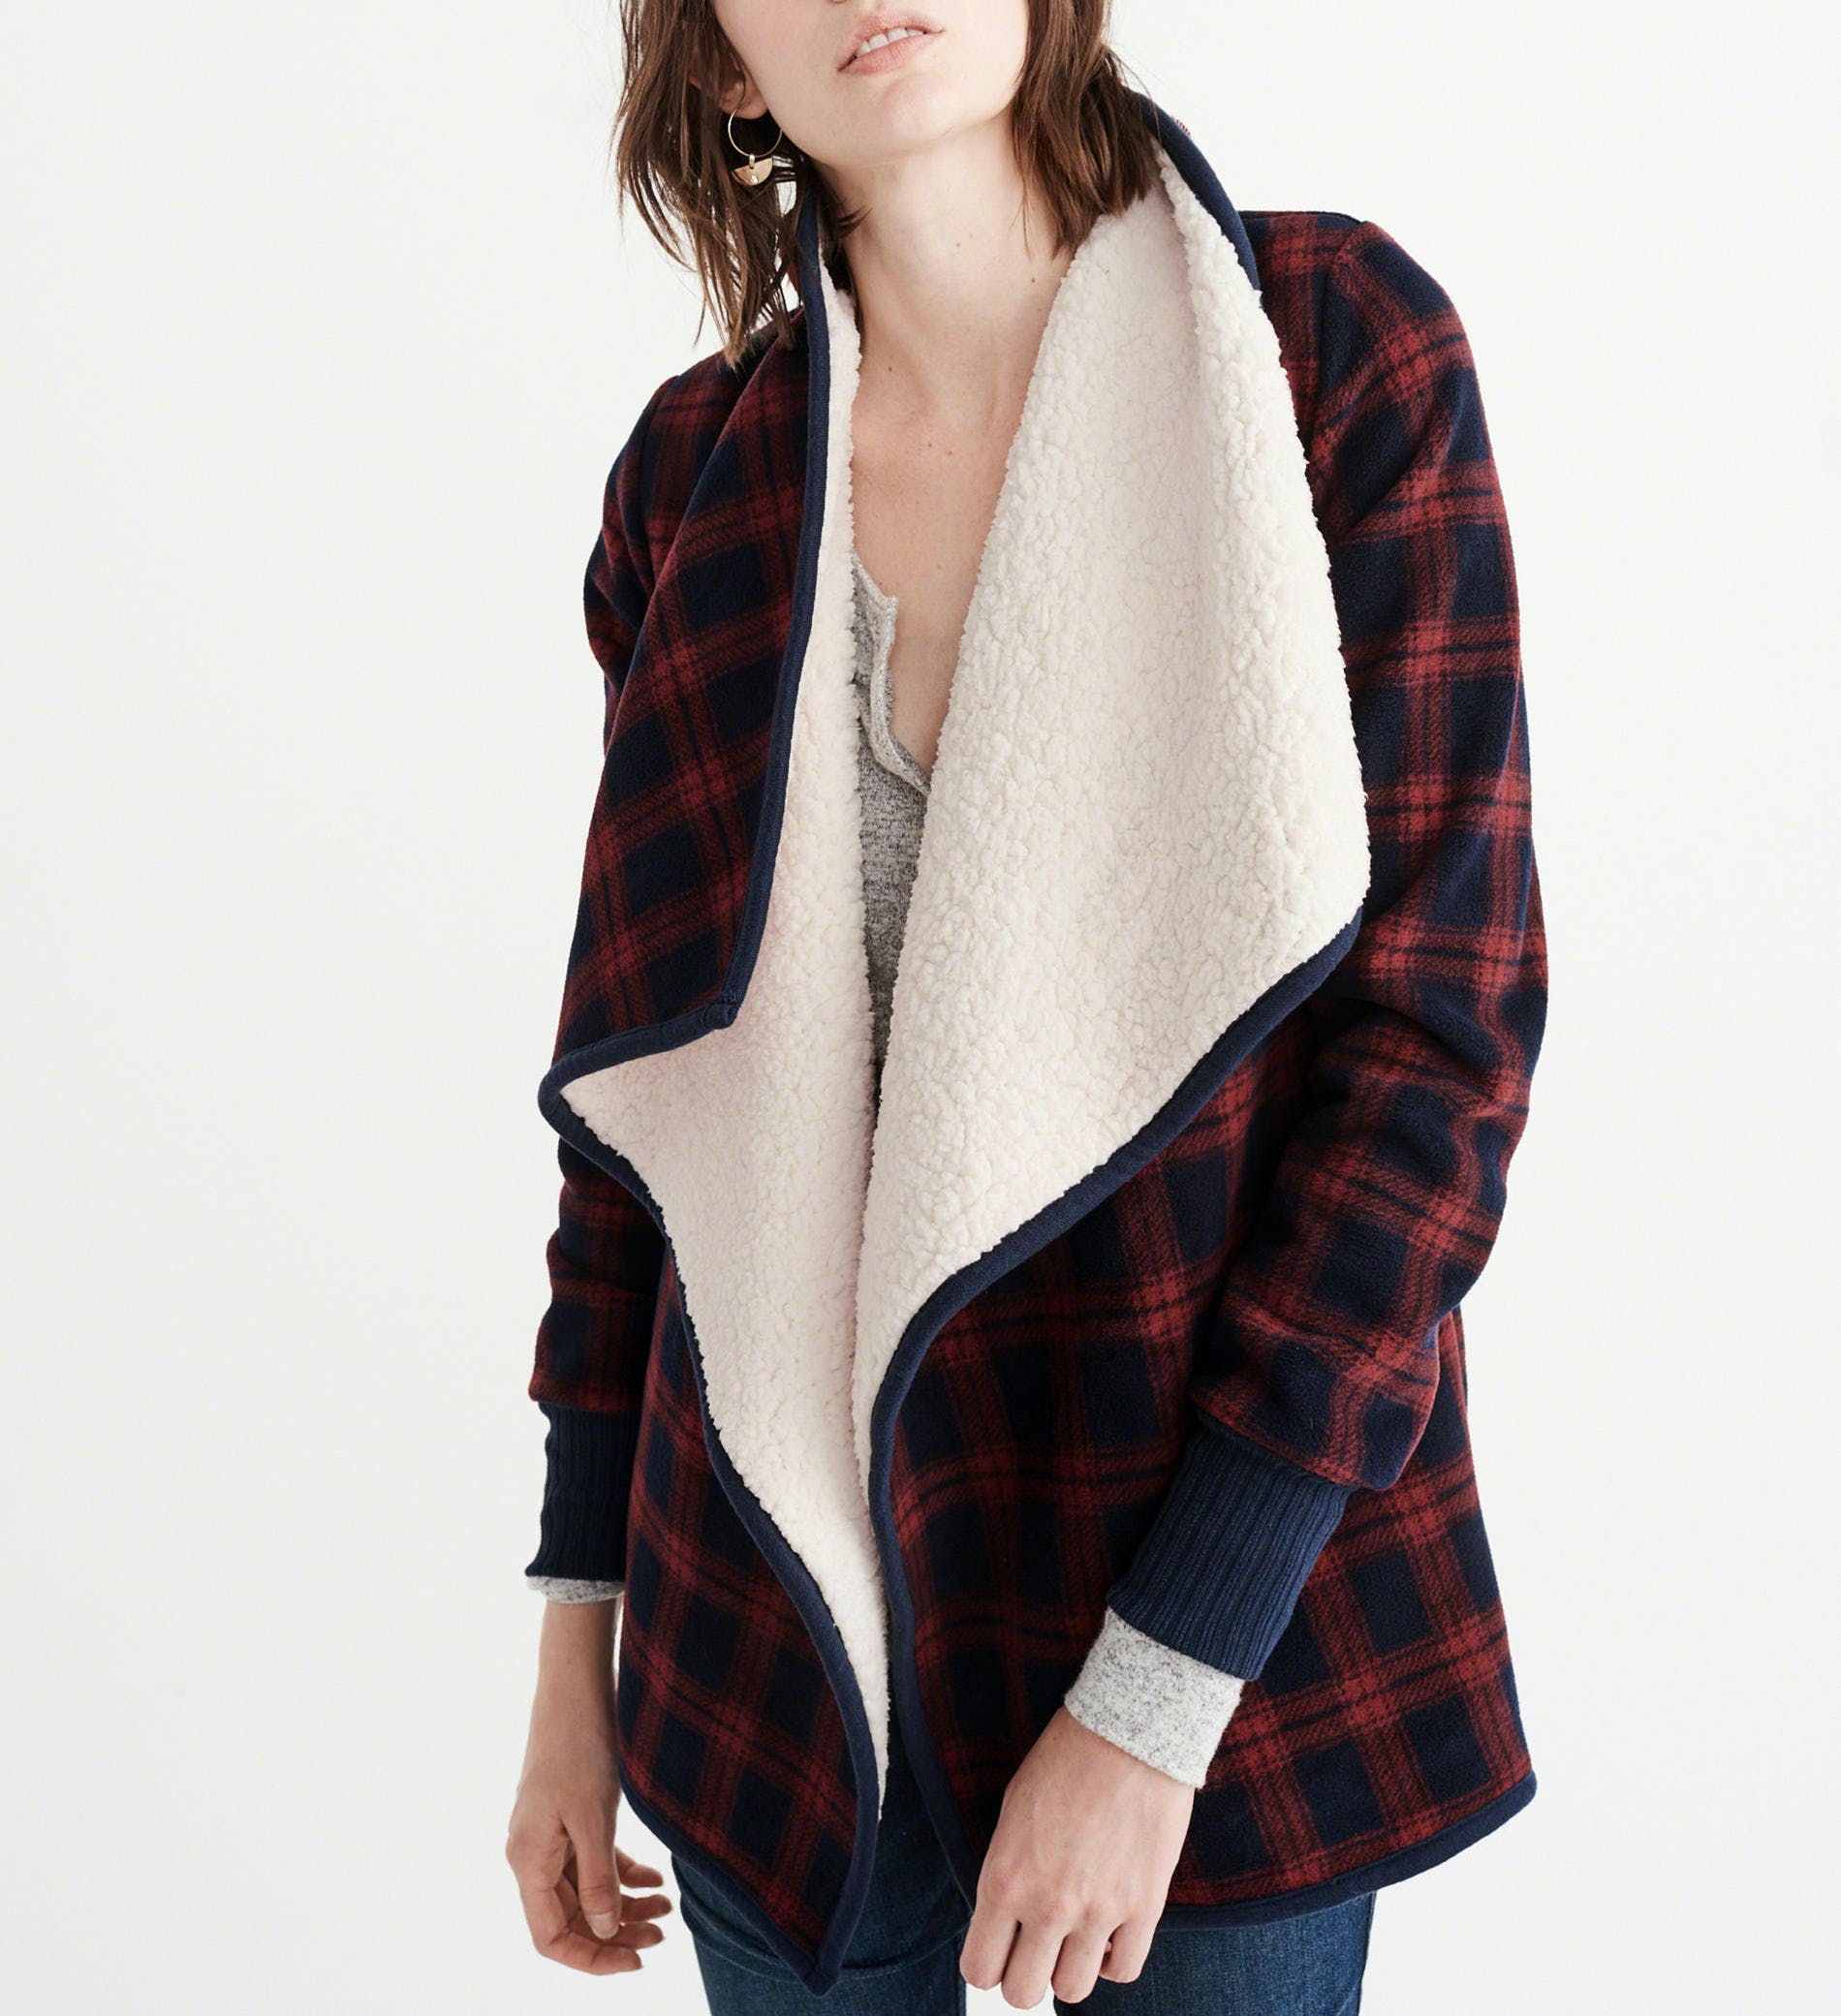 abercrombie plaid shearling dallas winter jackets